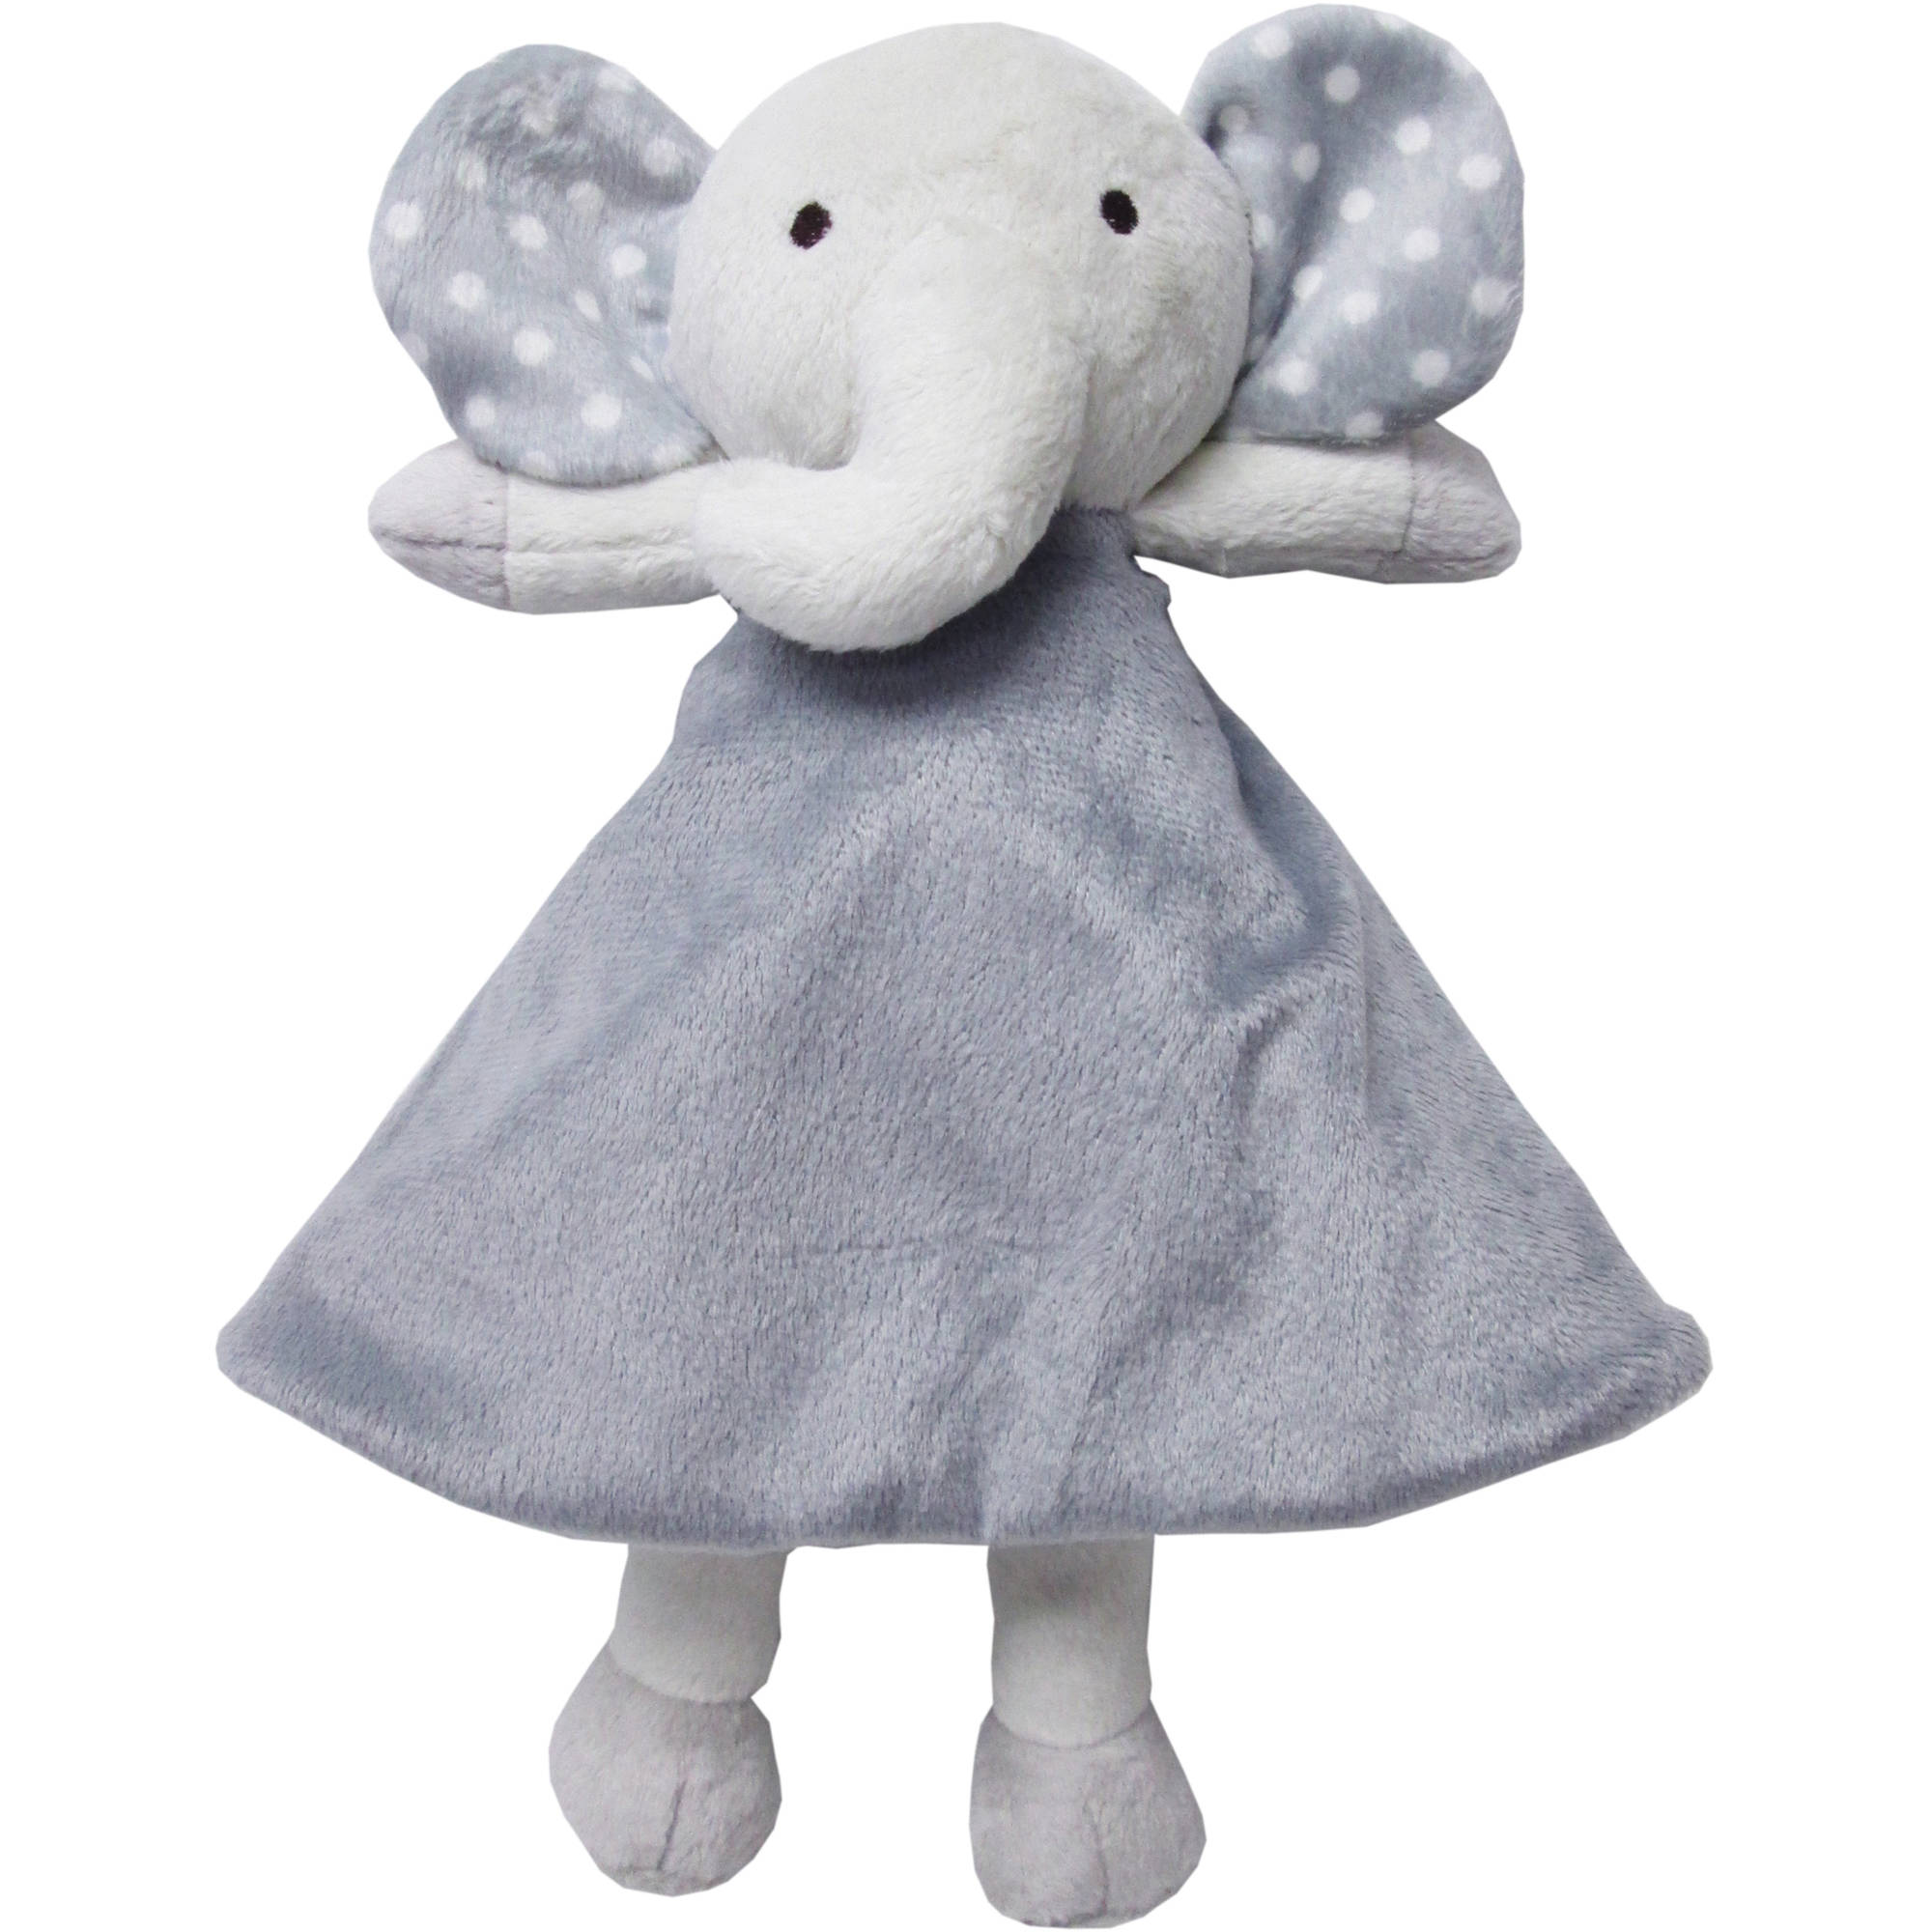 Sumersault Security Blanket, Gray Elephant